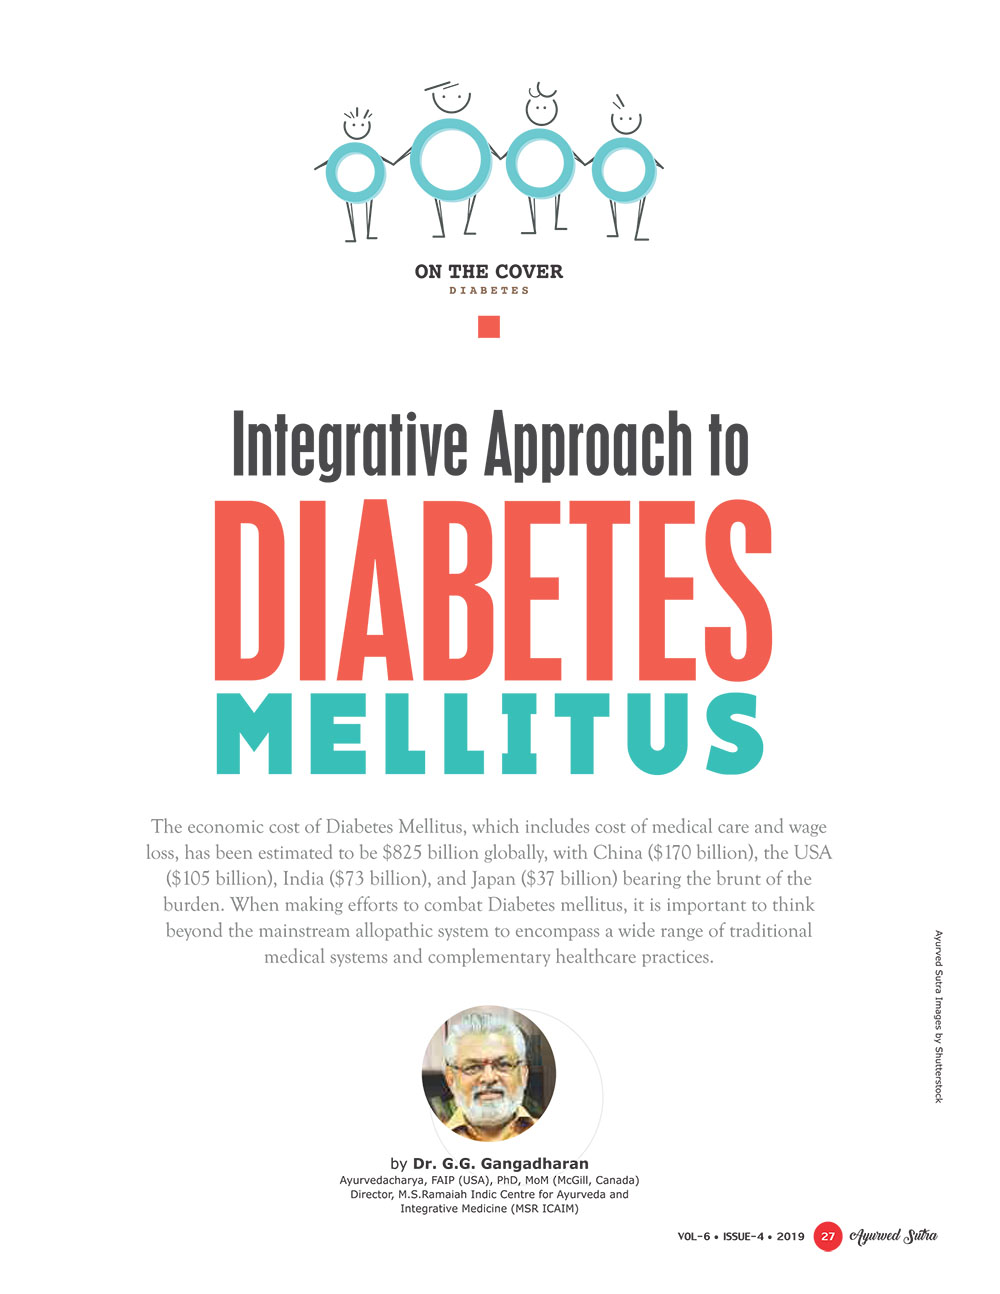 Ayurvedsutra Vol 06 issue 04 29 - Physicians must adopt Integrative Approach to Diabetes Mellitus